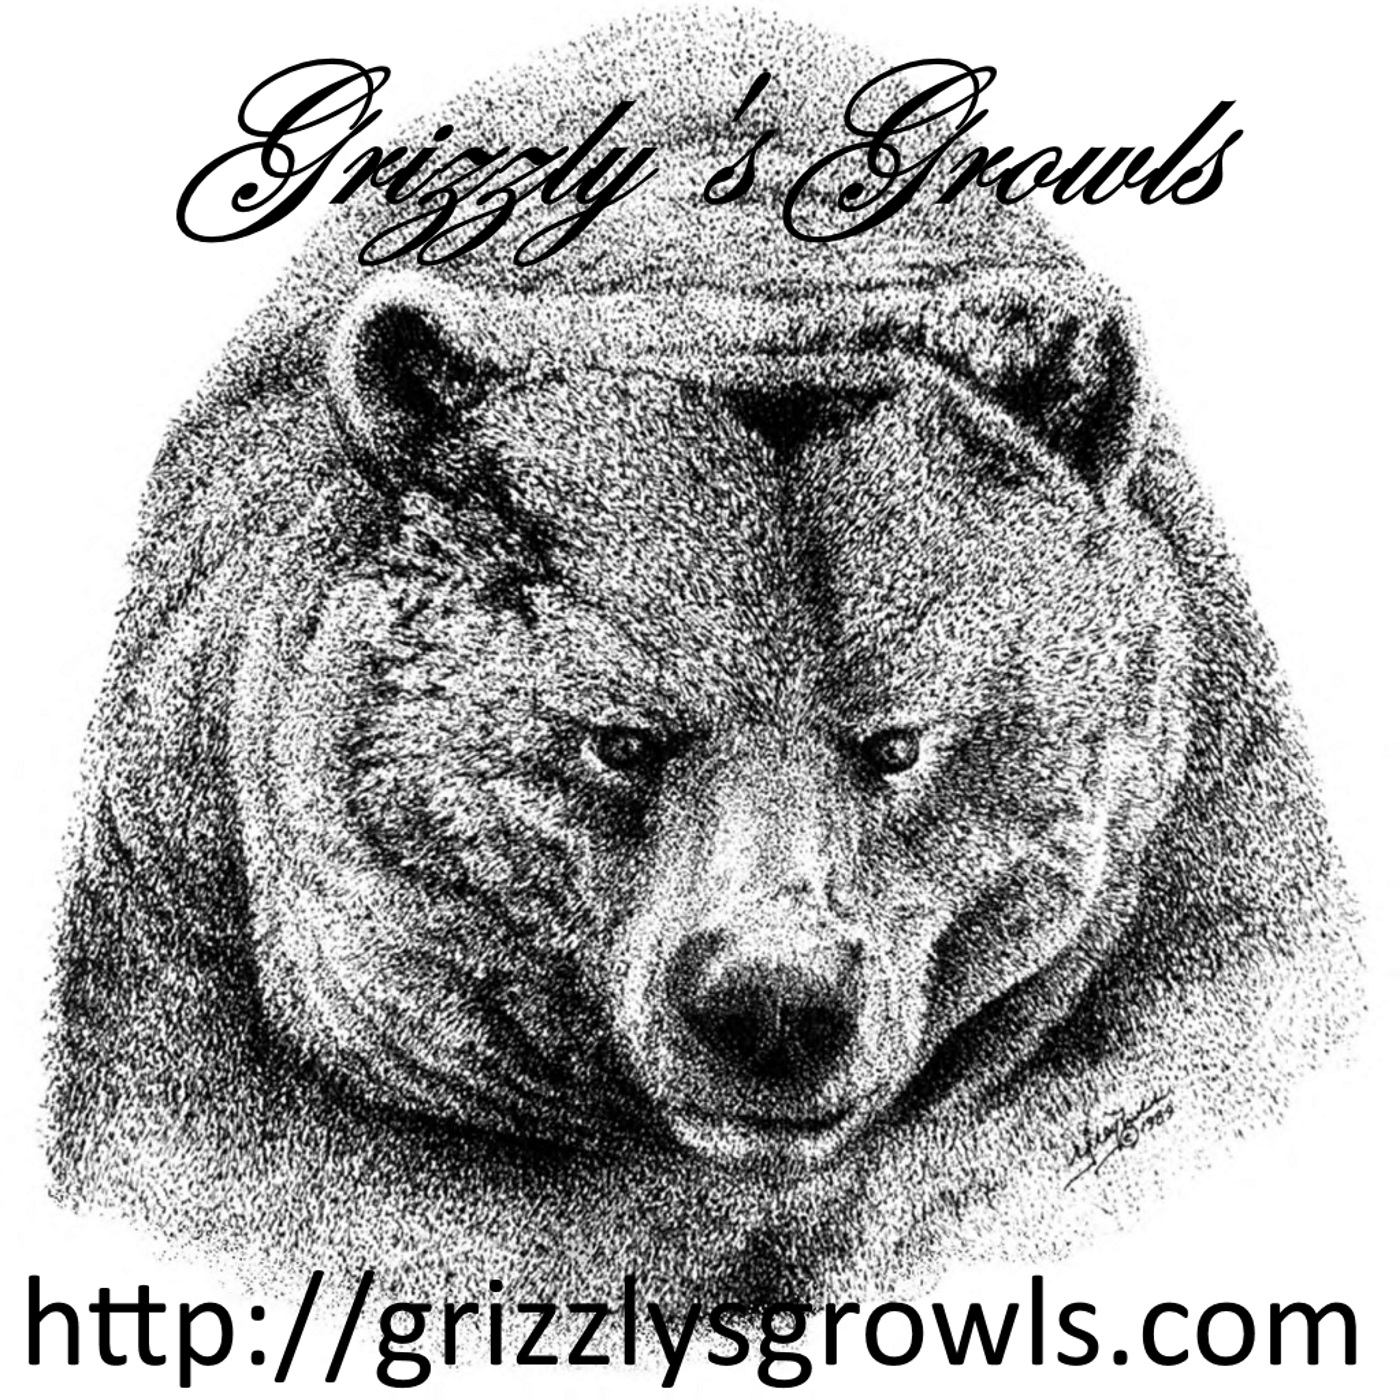 Grizzly's Growls podcasts show art